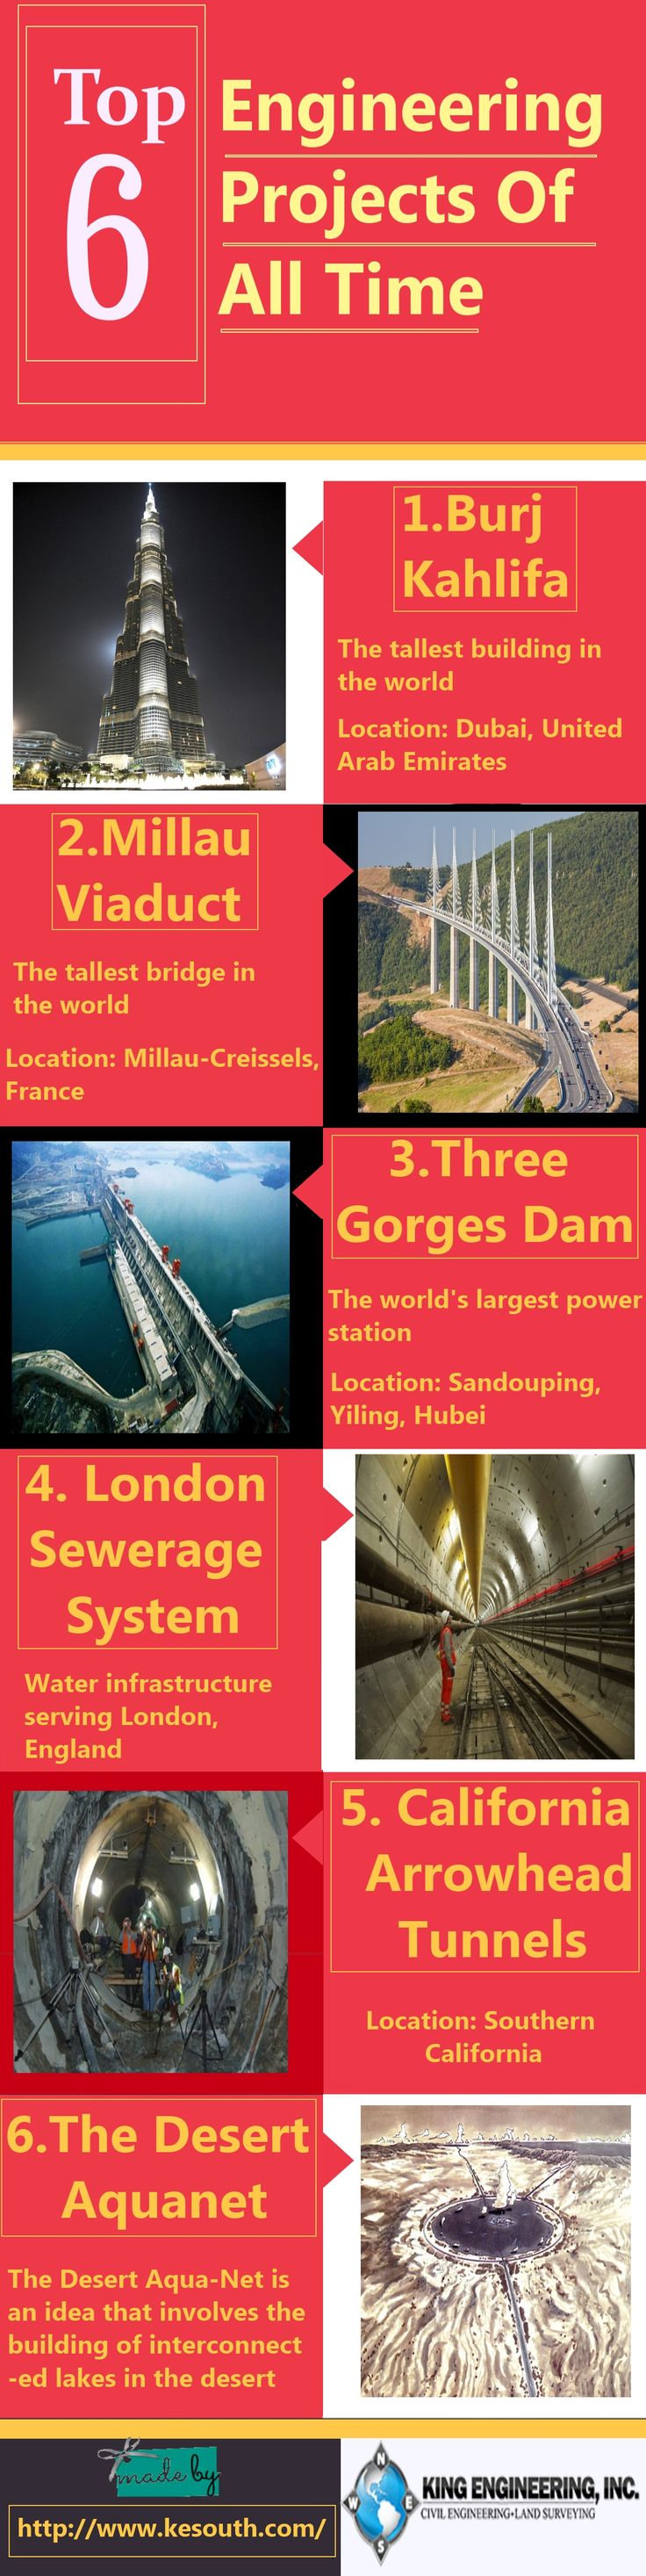 Top 6 Engineering Projects Of All Time                                                                                                                                                                                 More